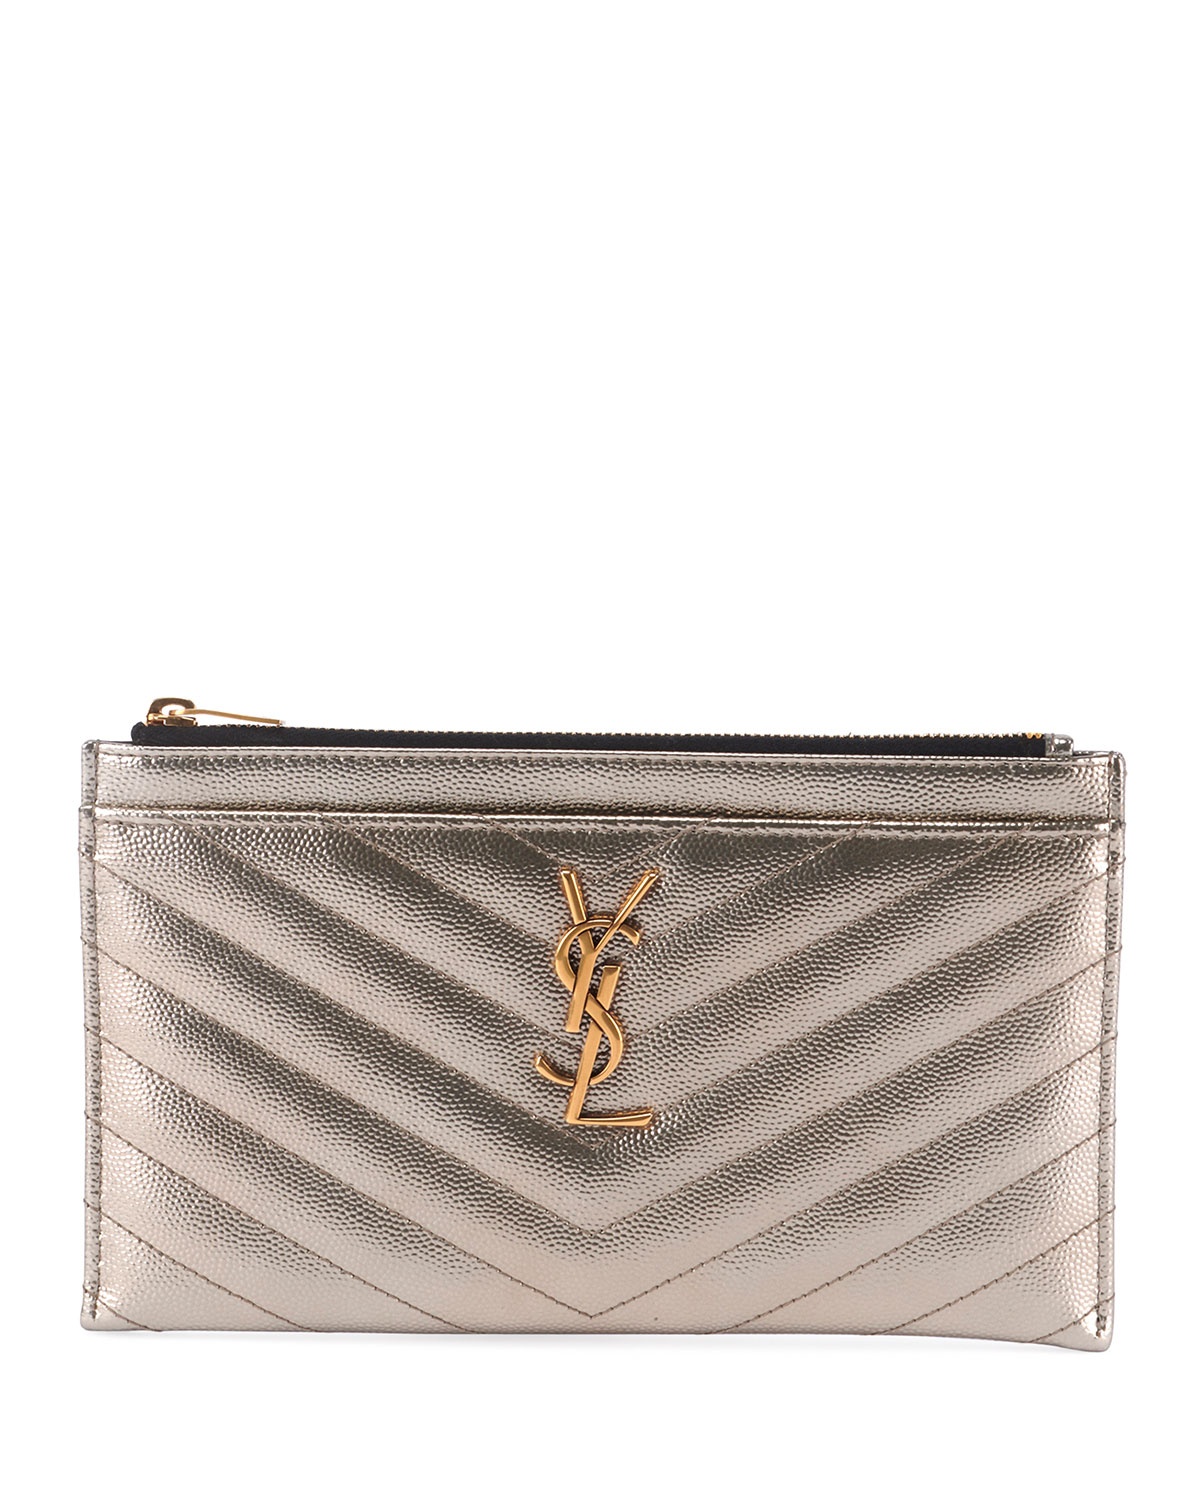 1434ef82e0 Monogram YSL Metallic Quilted Bill Pouch Wallet